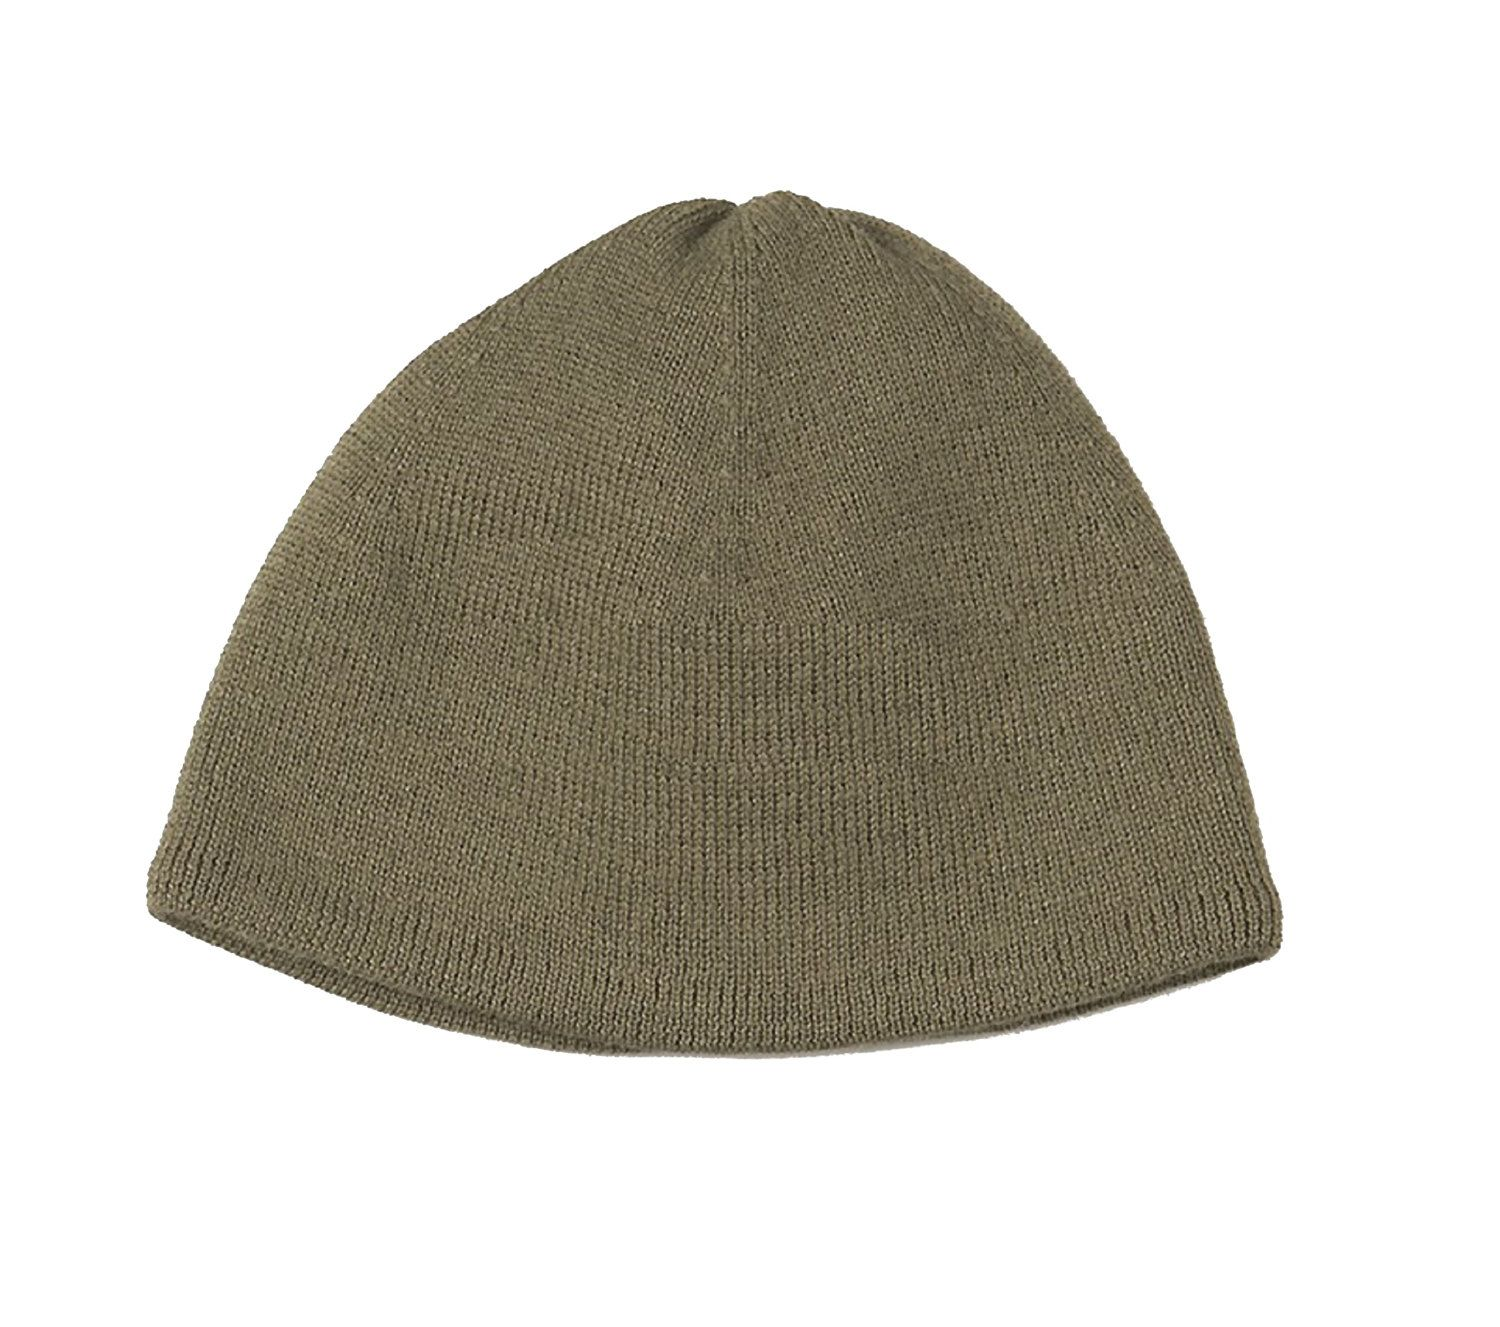 2c849cf5839 MFH KNITS 100% Baby Alpaca - Made in Peru - Unisex Solid Green Wool Knit  Skulls Chullo Cap Hat Beanies - Polar Lining by TINKUY on Etsy